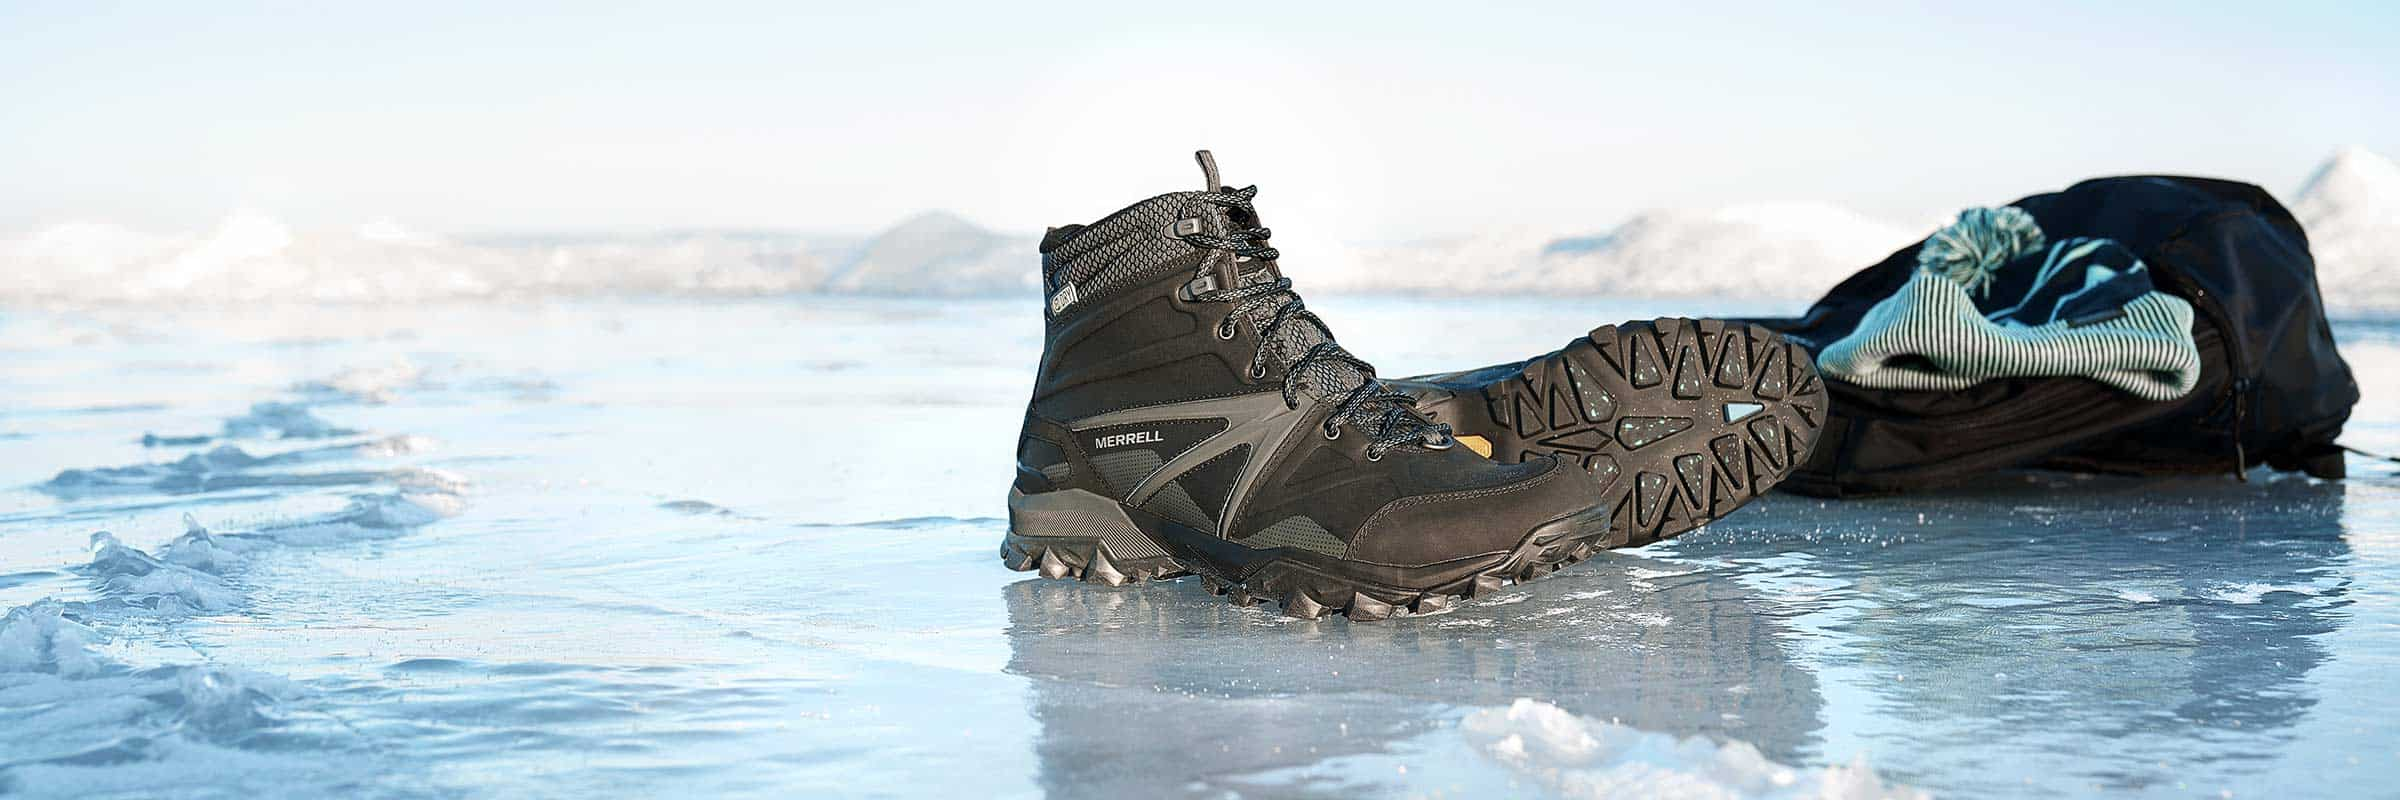 With Vibram Arctic Grip™ Soles, You'll Never Slip on Ice Again